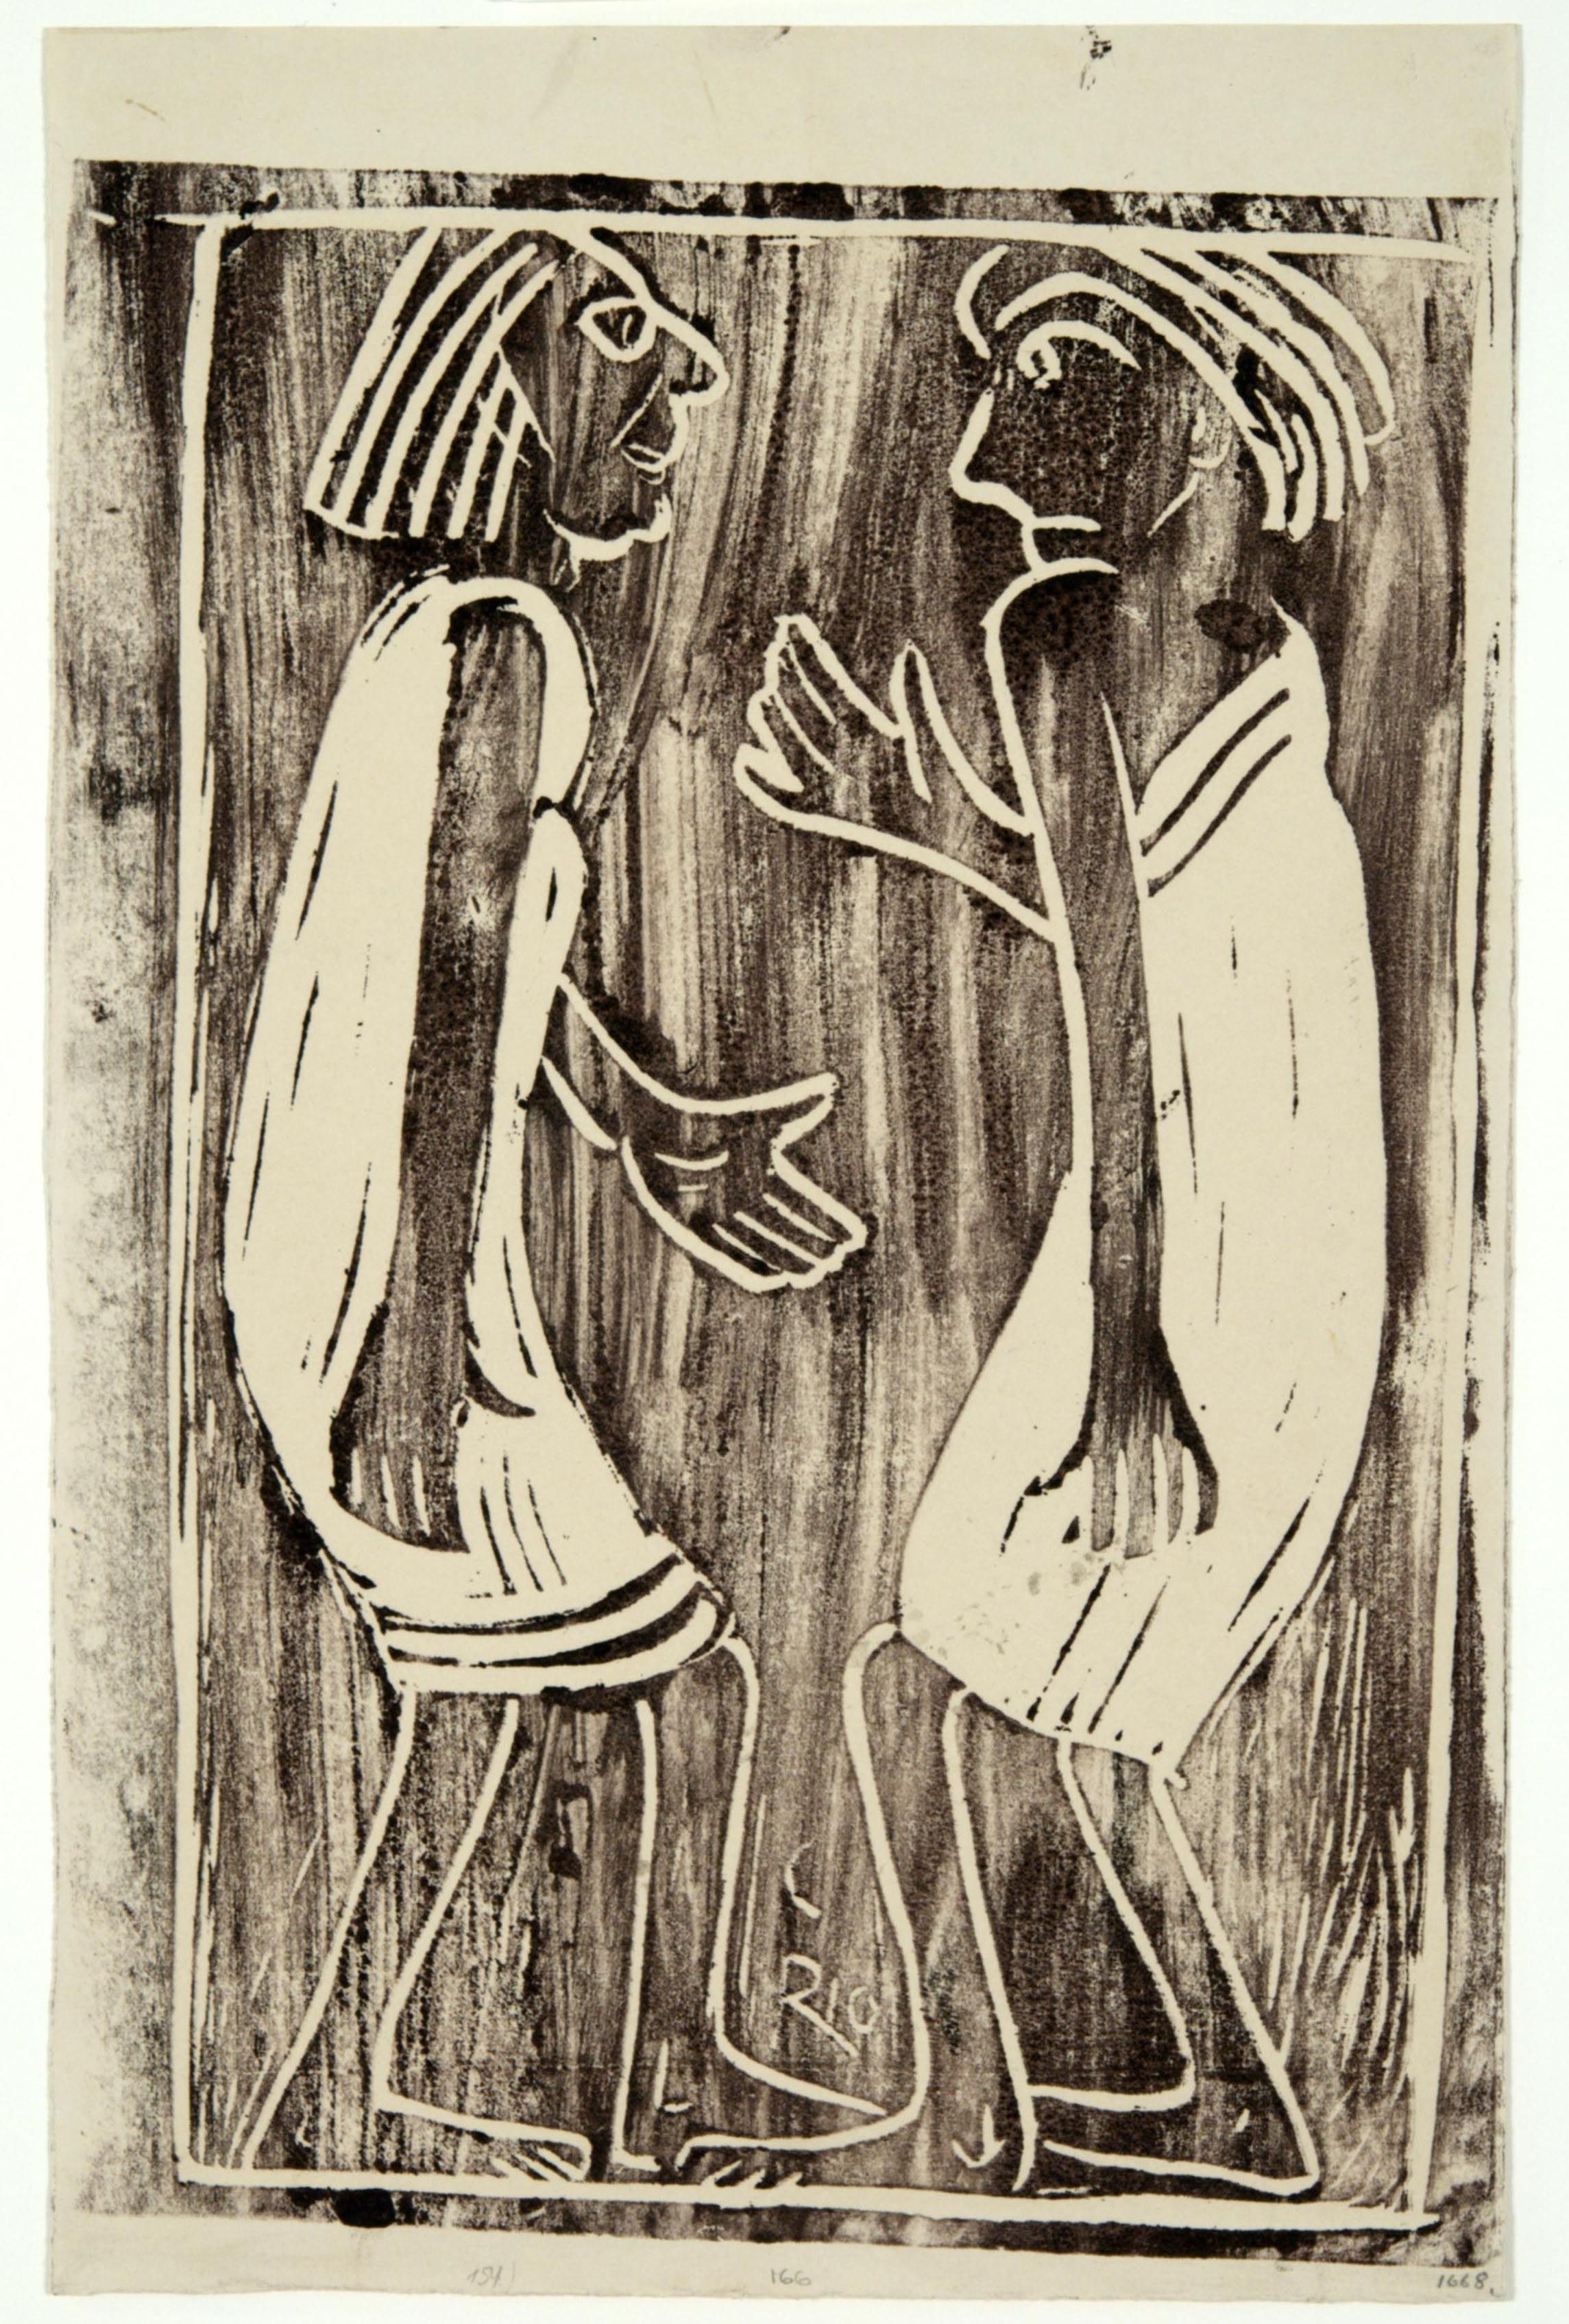 Christian Rohlfs, Argument, 1910